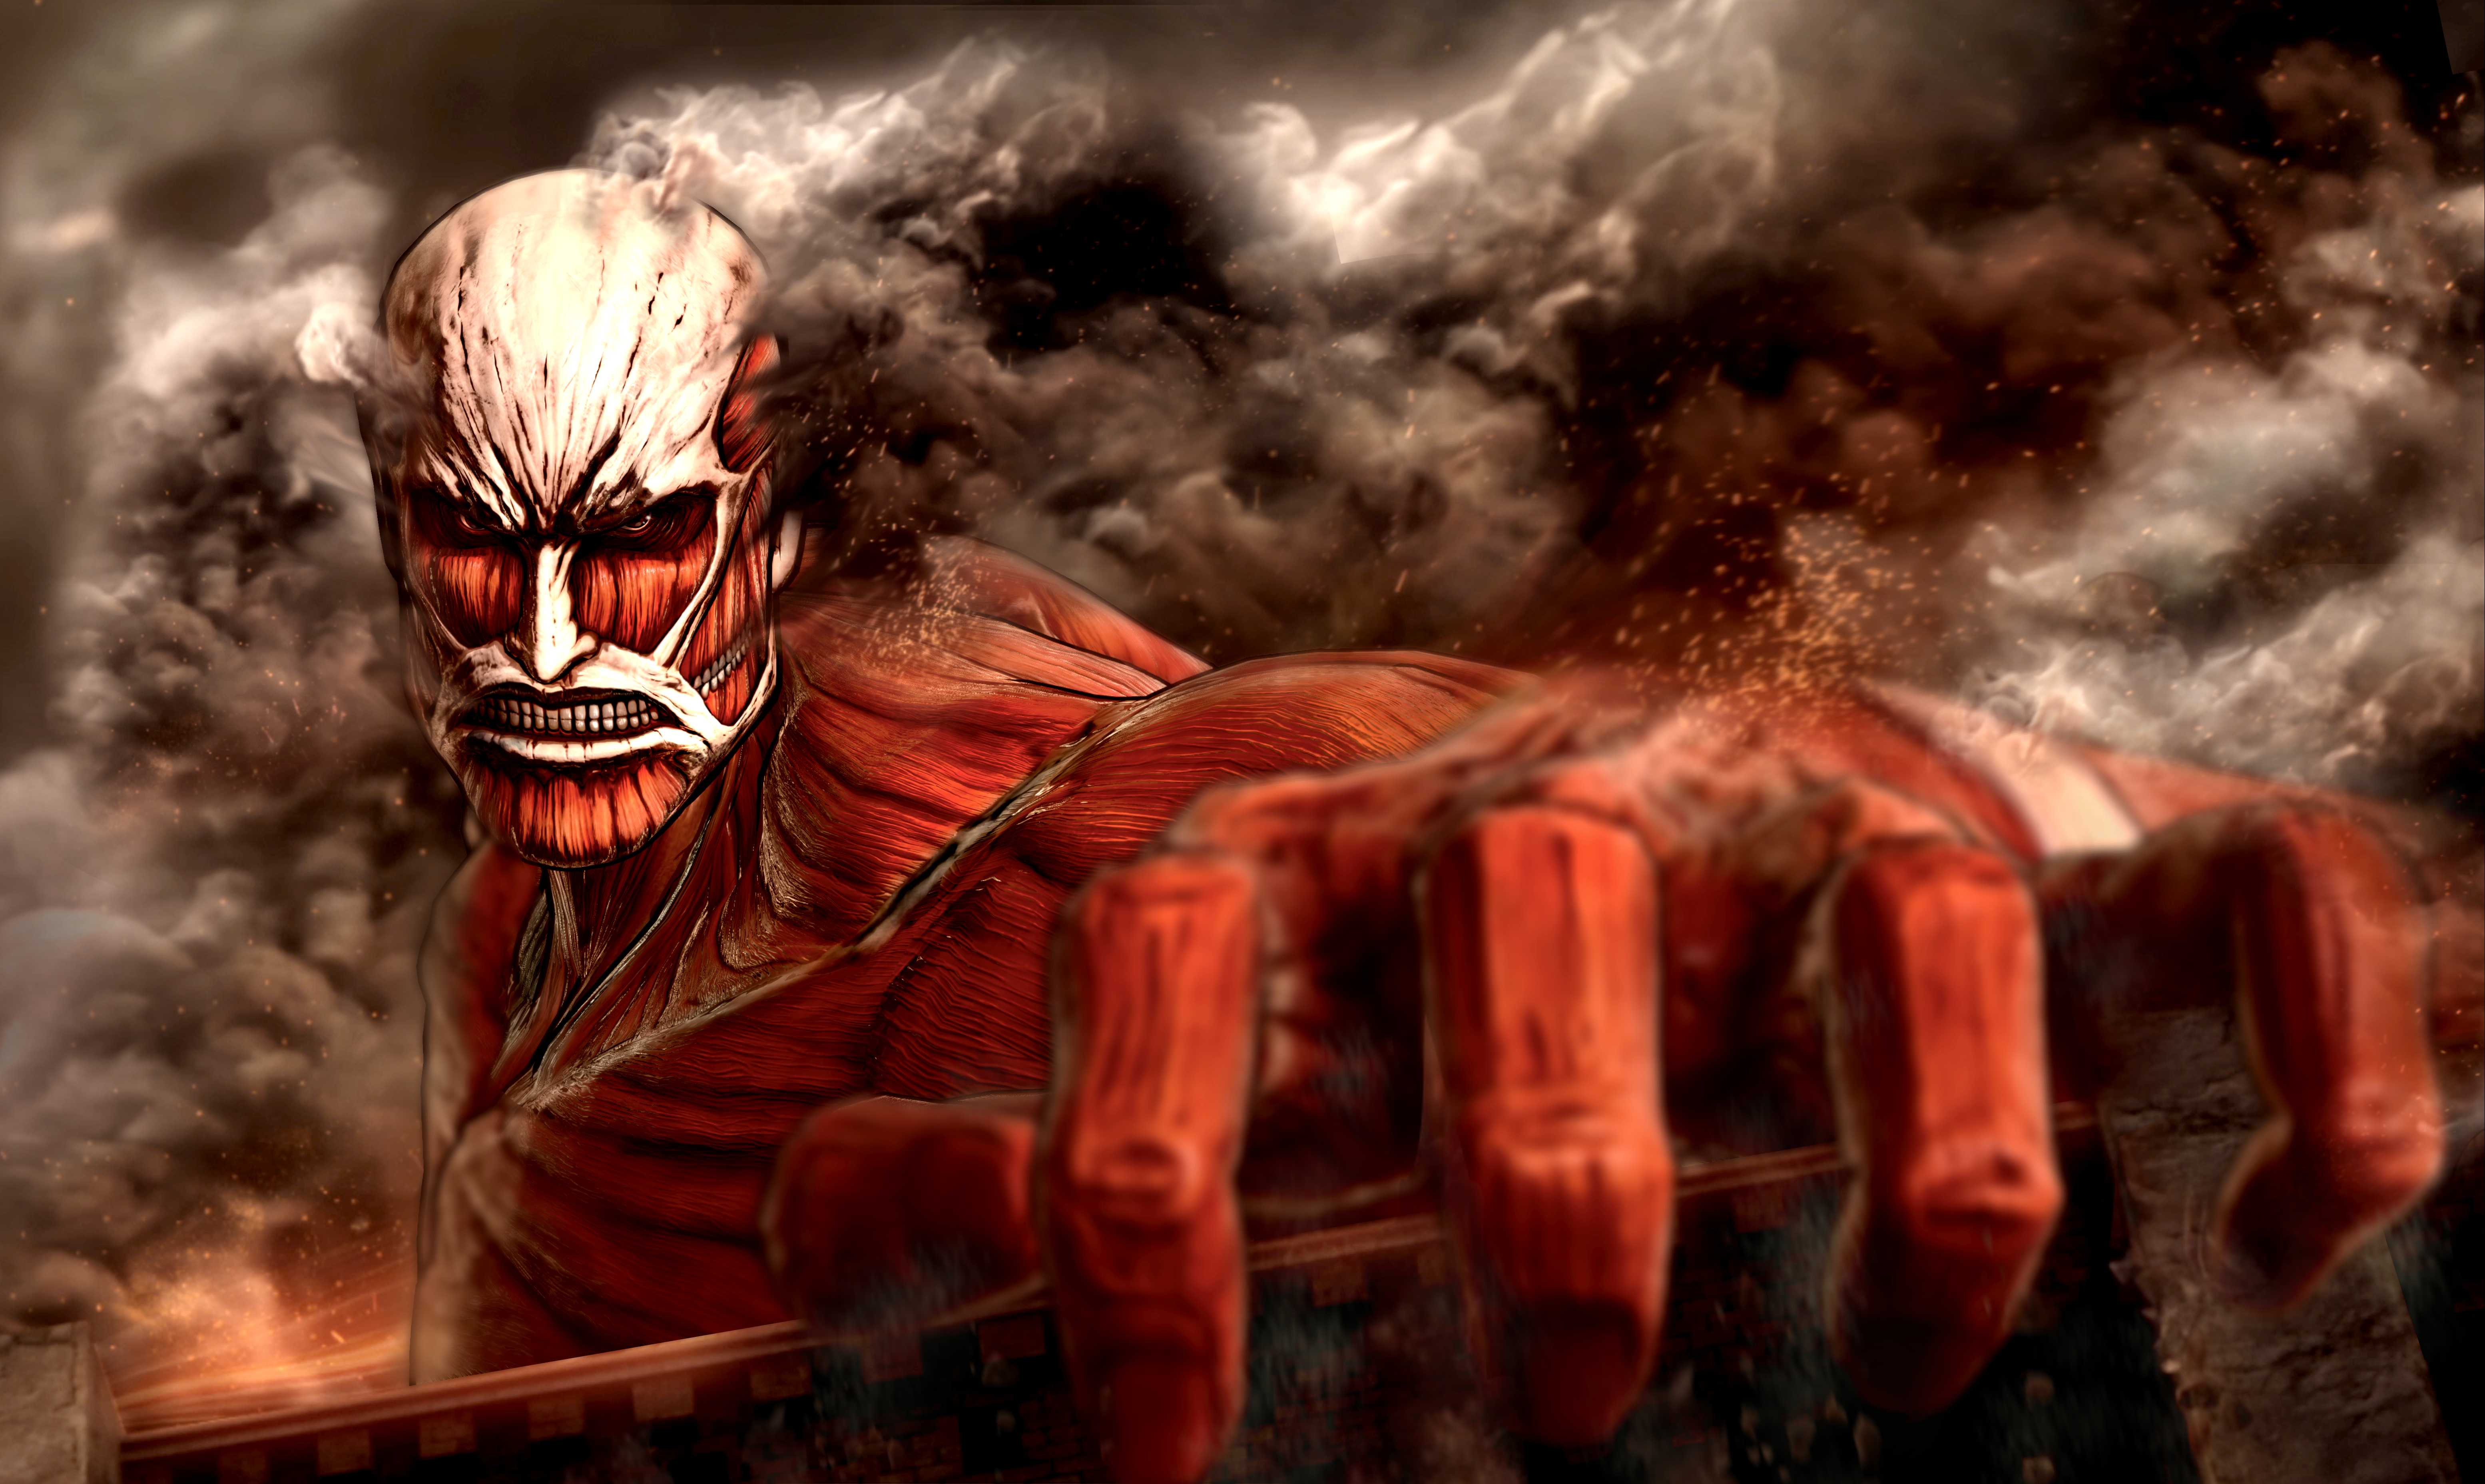 Attack On Titan' Game Review: Koei Tecmo And Omega Force's